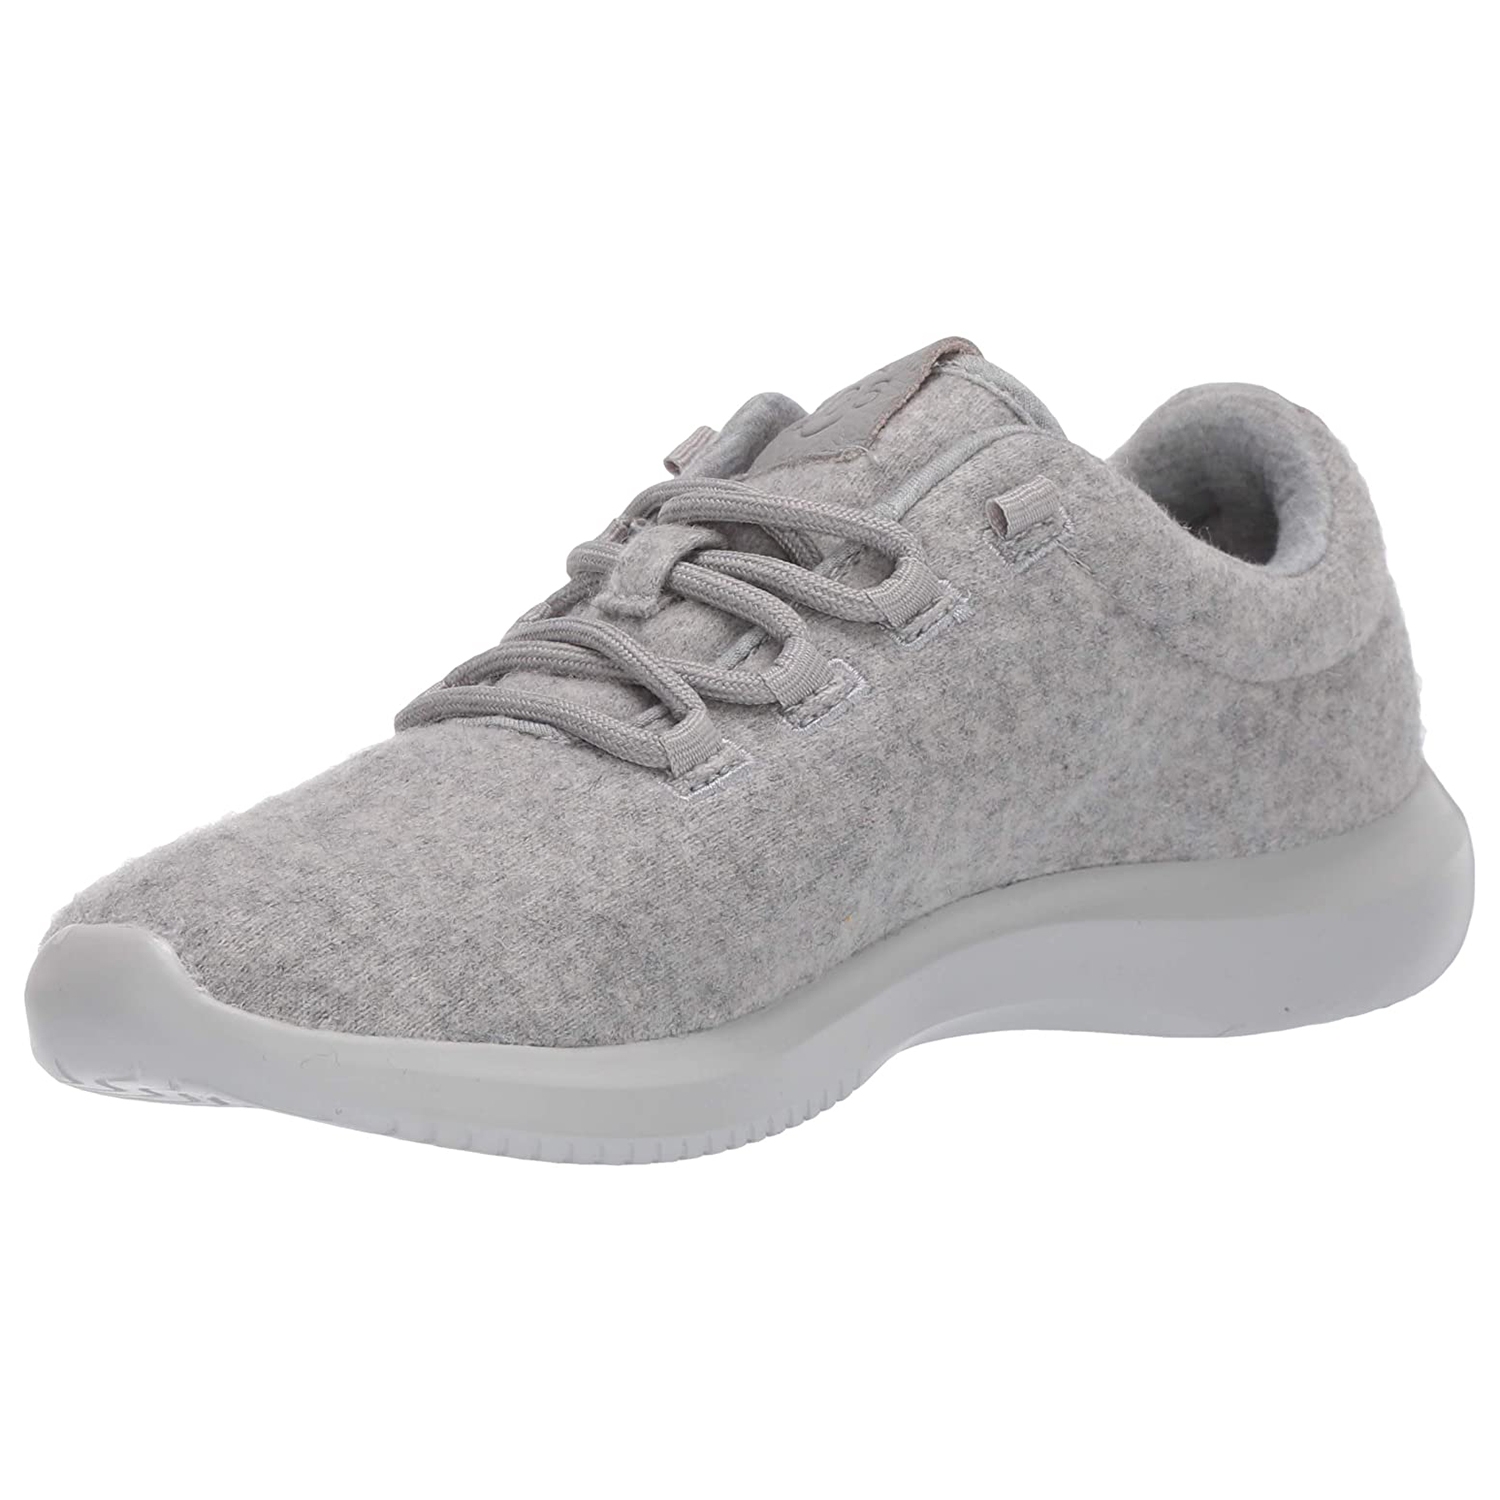 Amazon Brand 206 Collective Women's Shoes